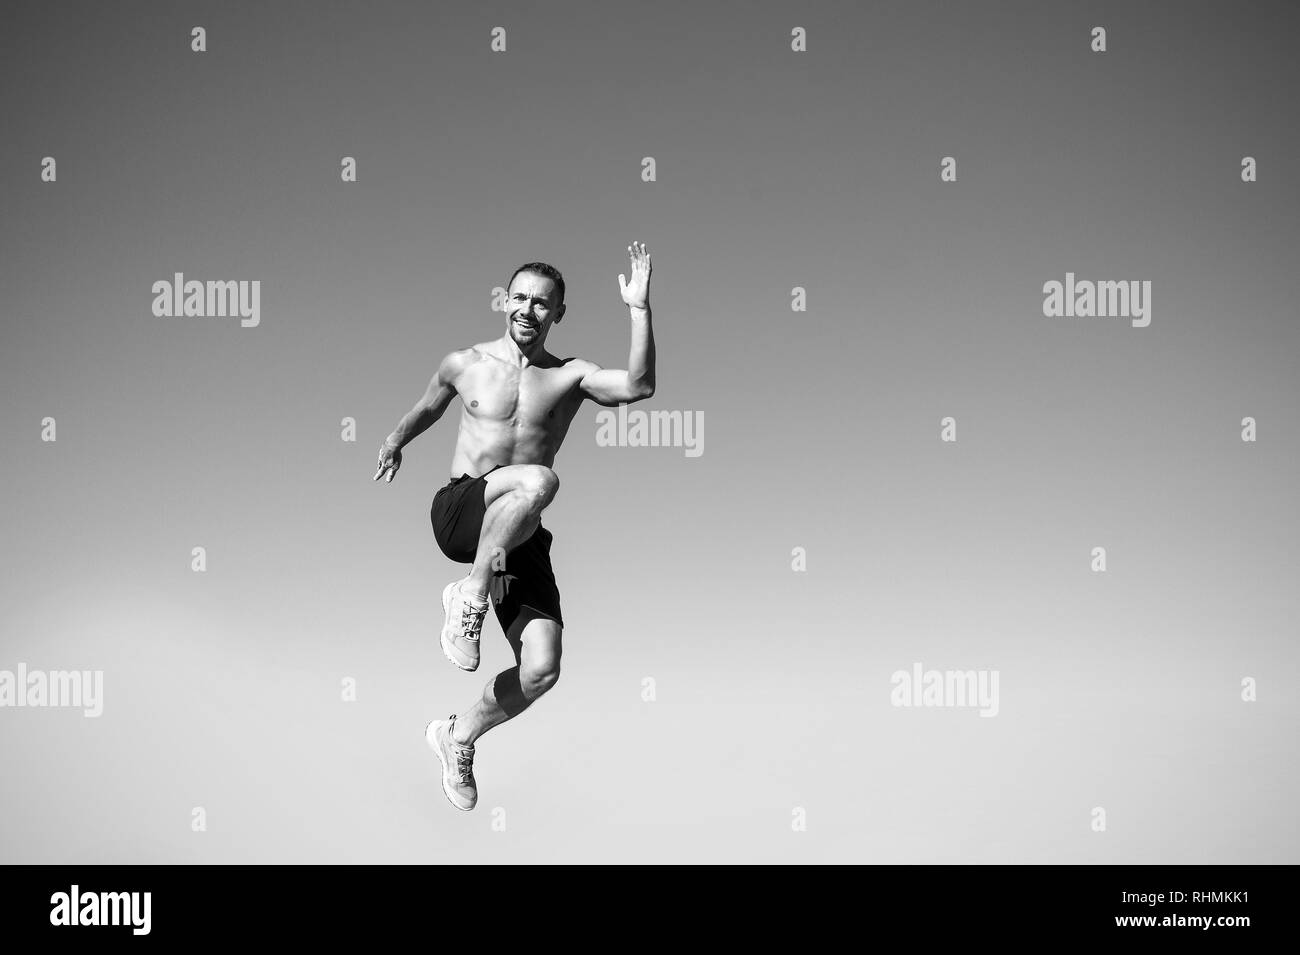 Its the health activities my body really responds to. Man jump high in air. Muscular man celebrate success in sport. Master of sport. Muscular energy. Health care. Think big goals and win big success. - Stock Image